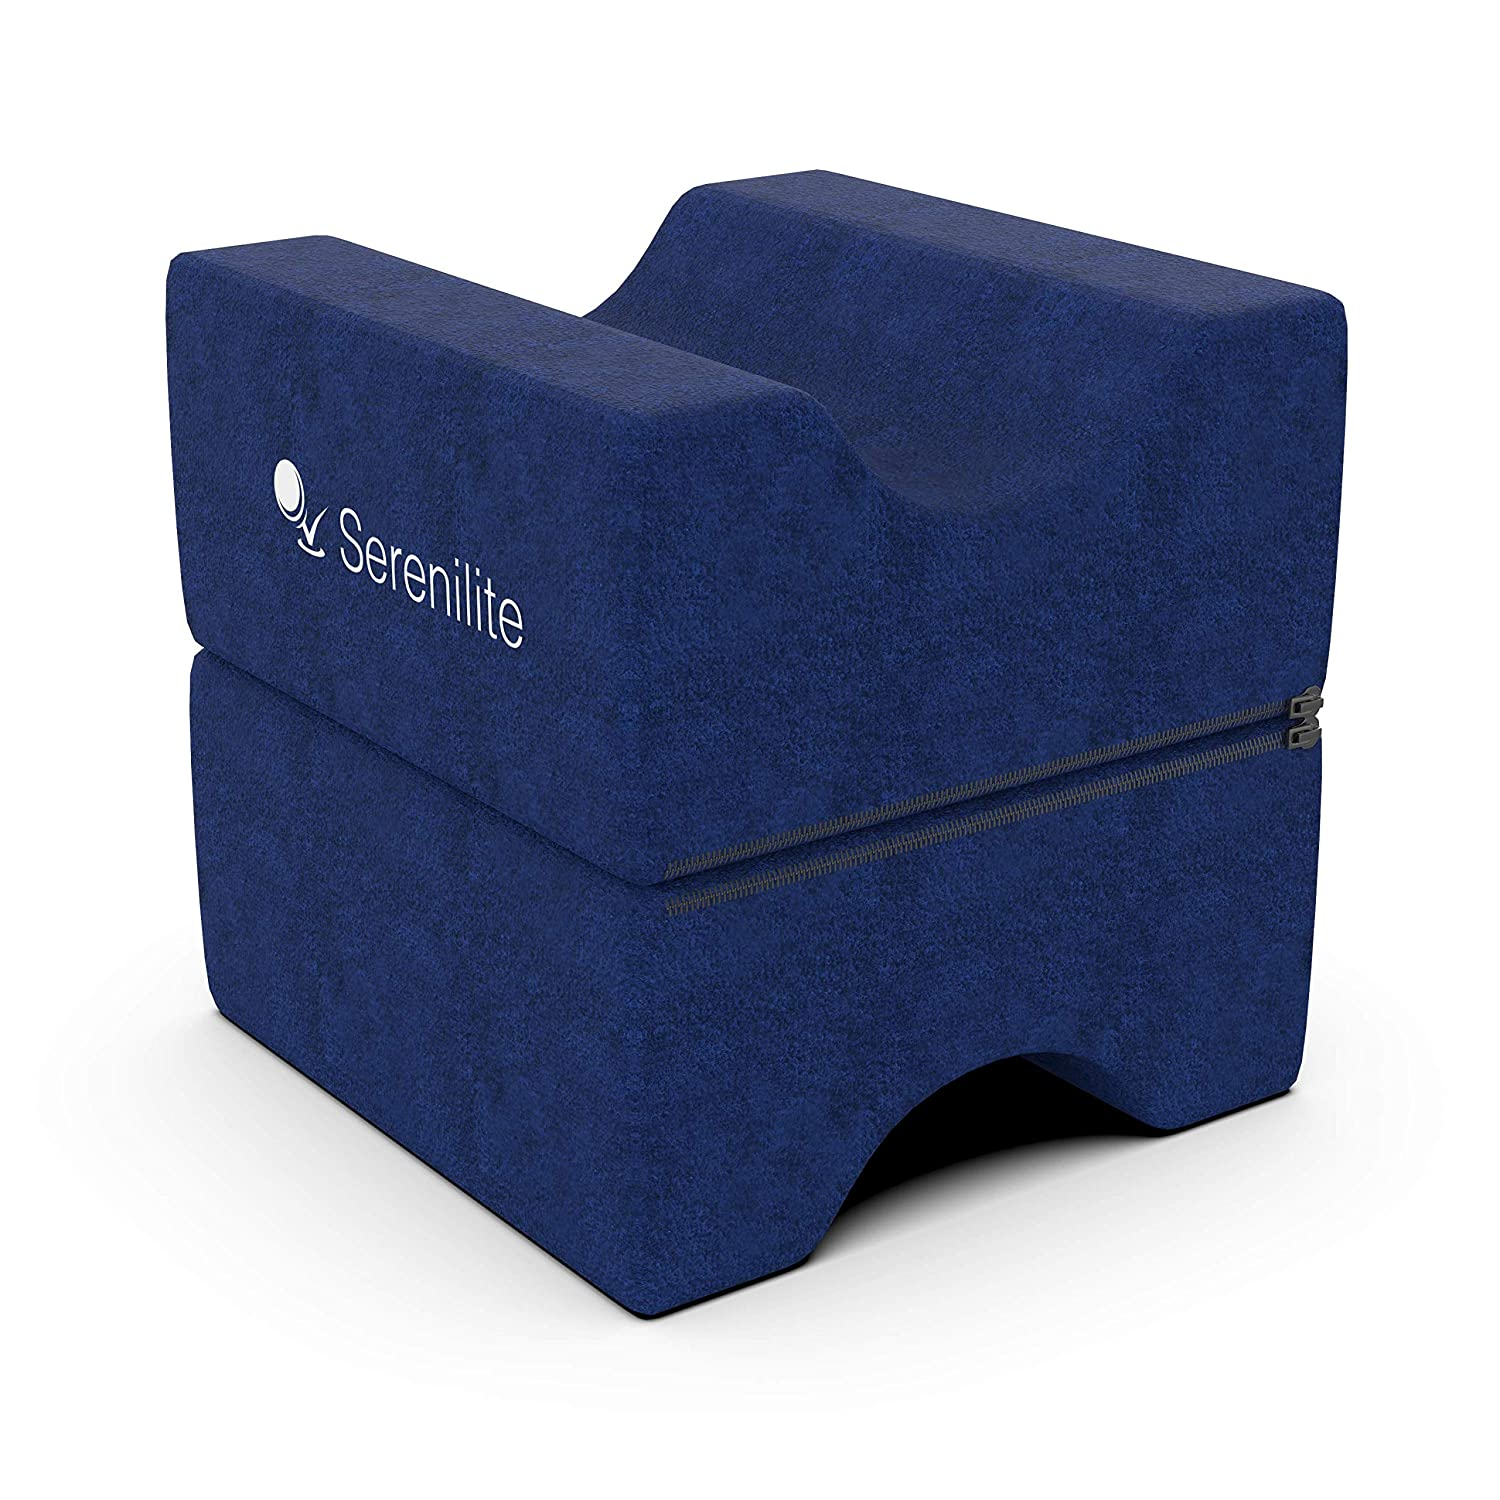 Serenilite Cooling Memory Foam Layered Contour Knee Pillow & Leg Rest - Great for Knee, Leg, Back, Joint, Ankle, Sciatica Pain Relief - Optimal Leg Support & Great for Pregnancy - Plush Velour Cover COMIN16JU045002